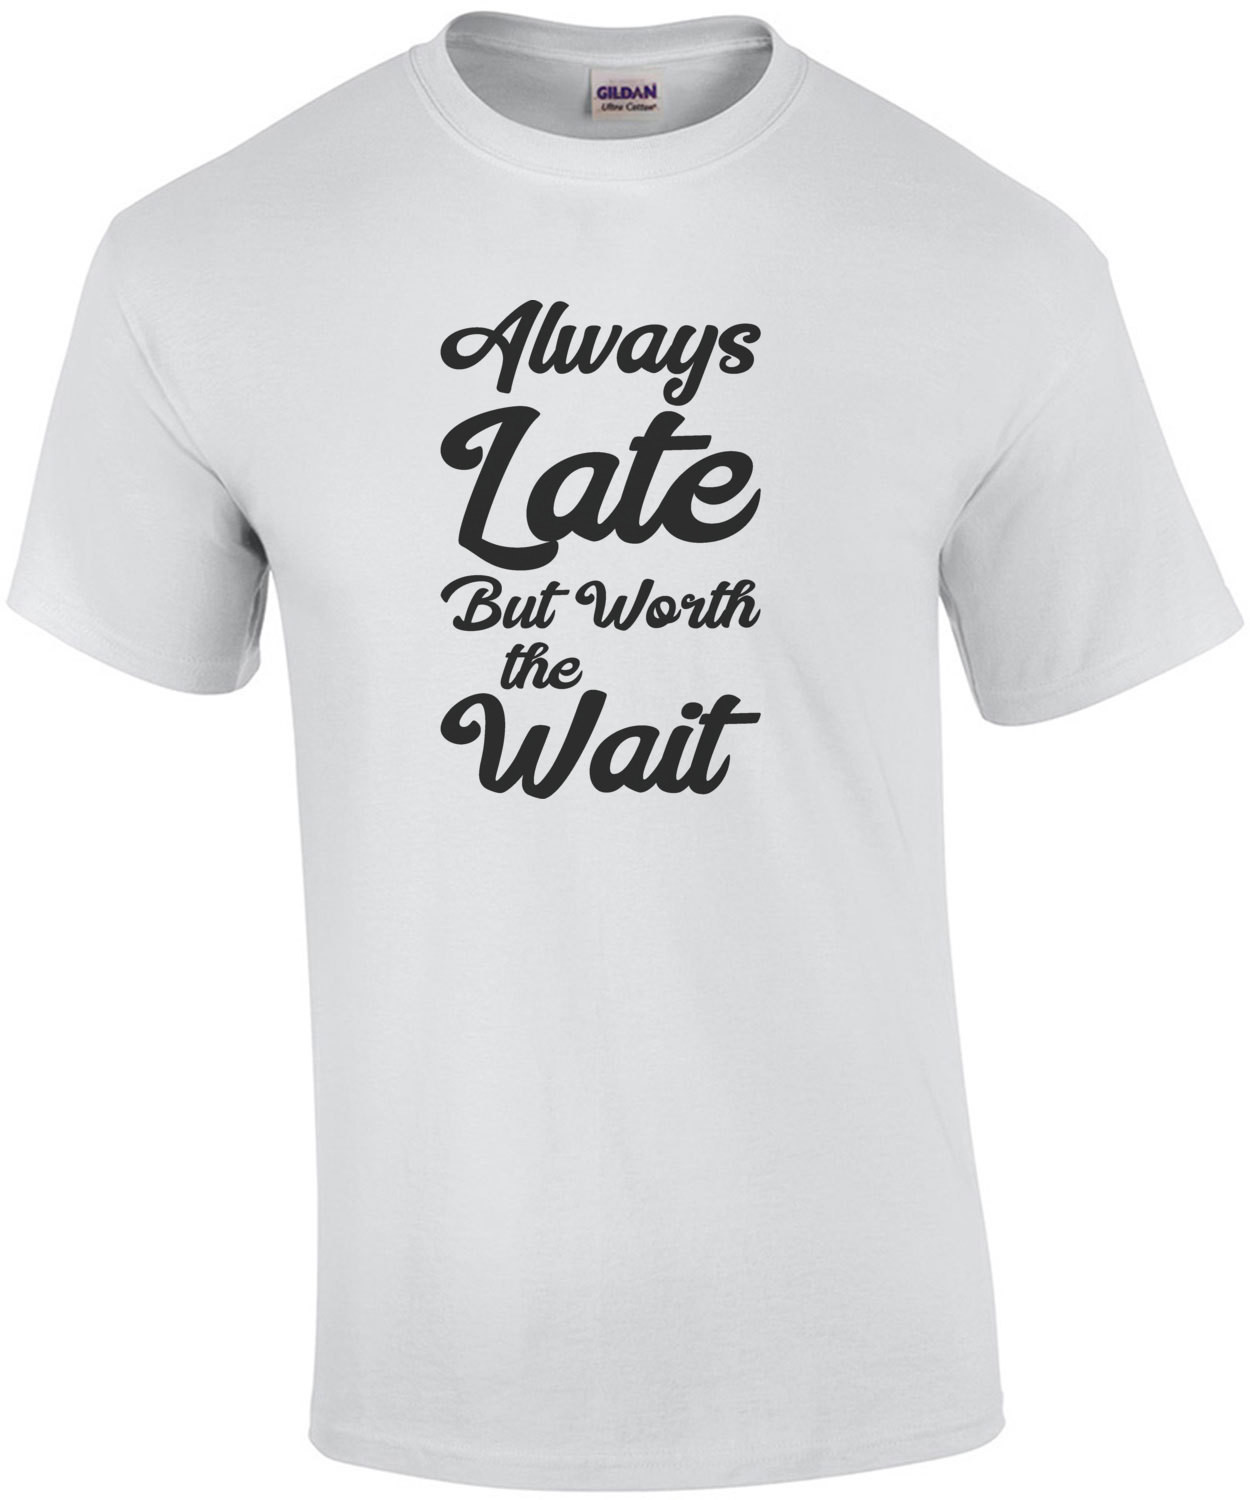 Always Late but worth the wait - funny t-shirt